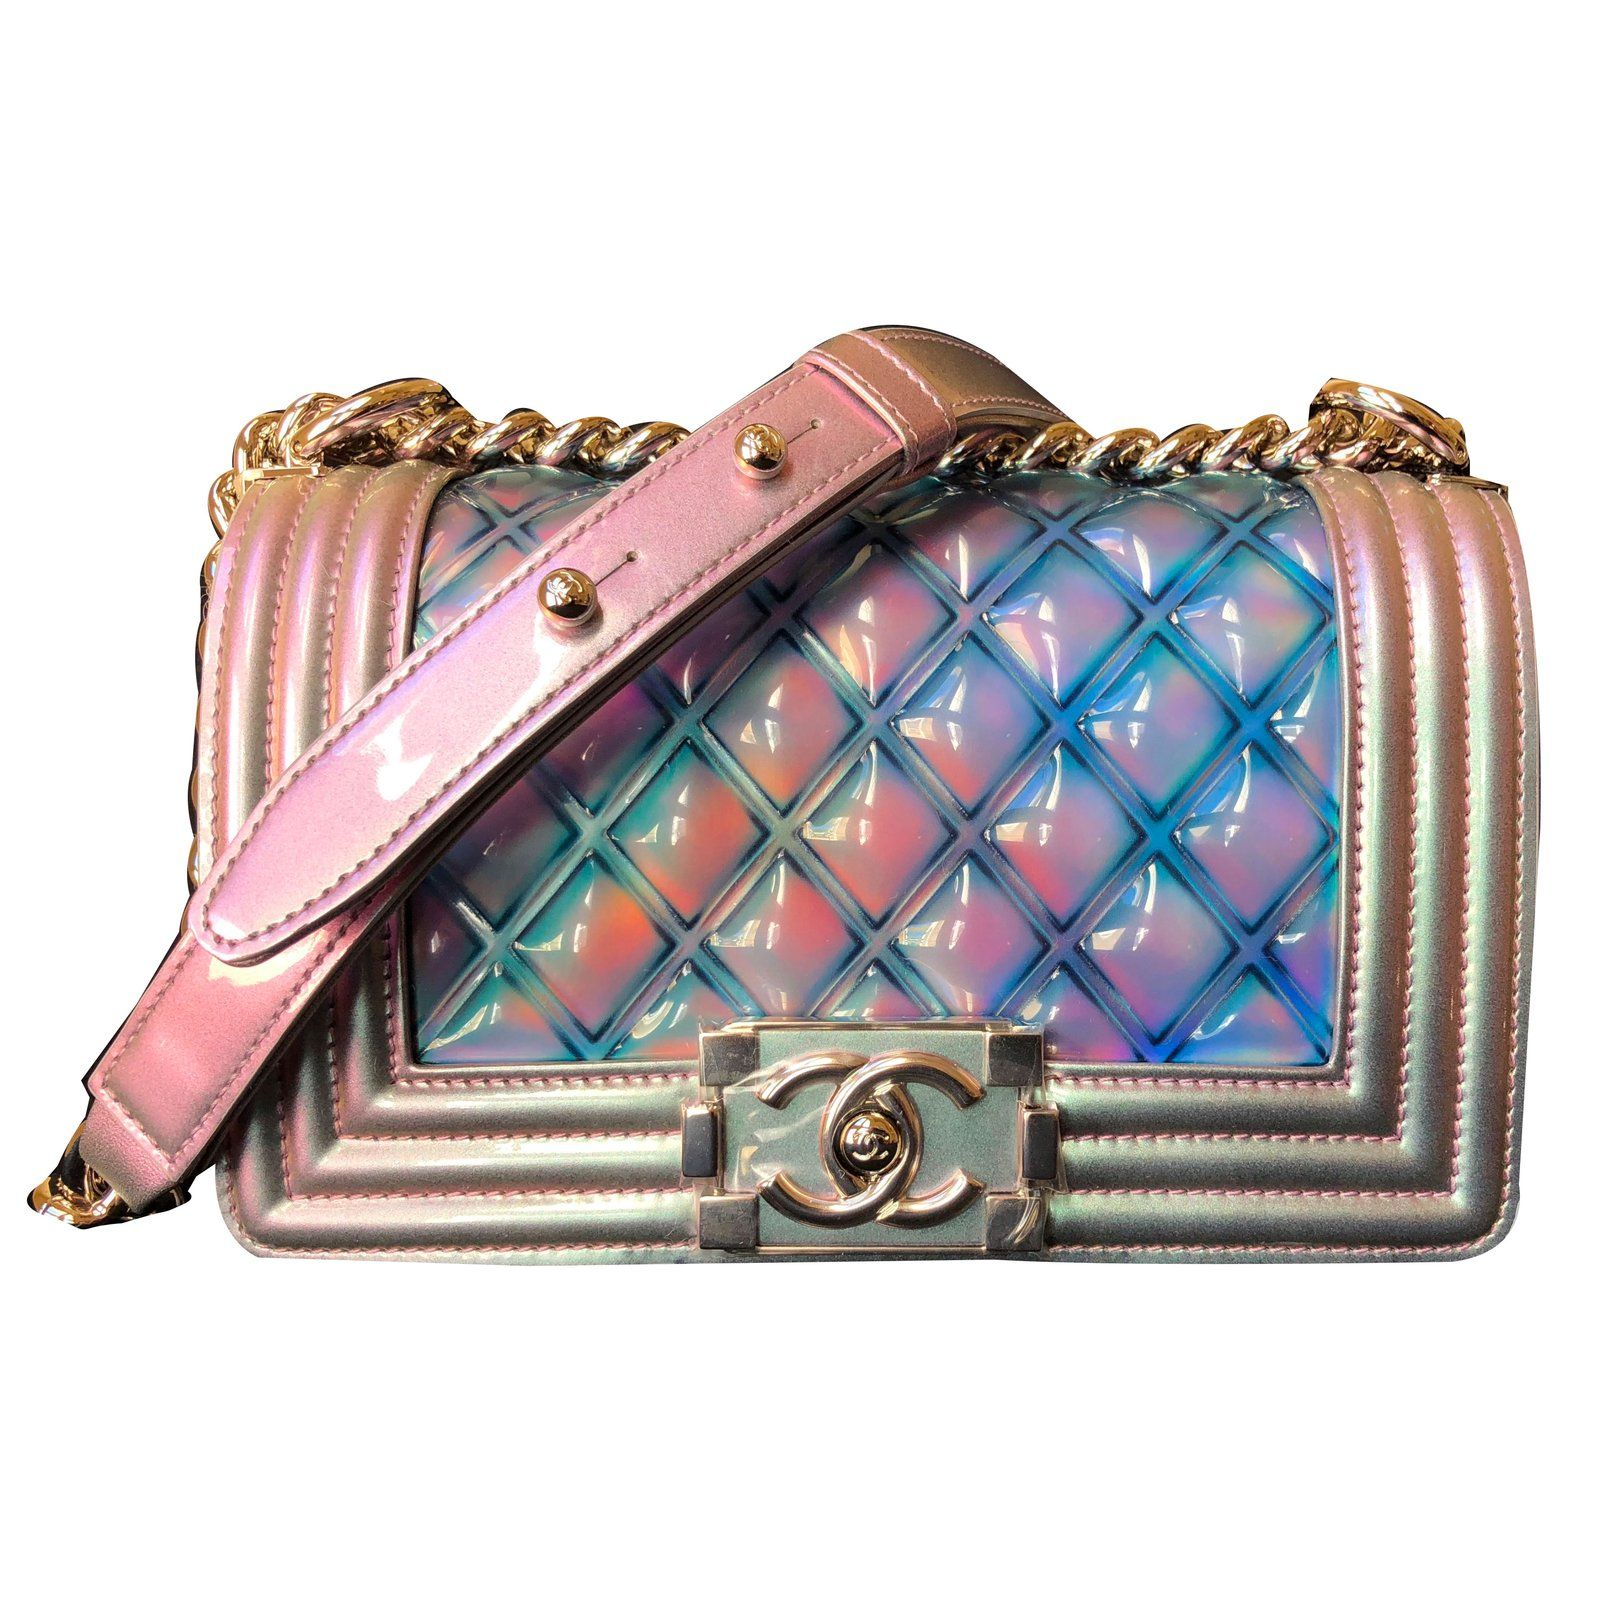 d3b1141798ef Sacs à main Chanel Small boy bag Cuir vernis Multicolore ref.67993 - Joli  Closet